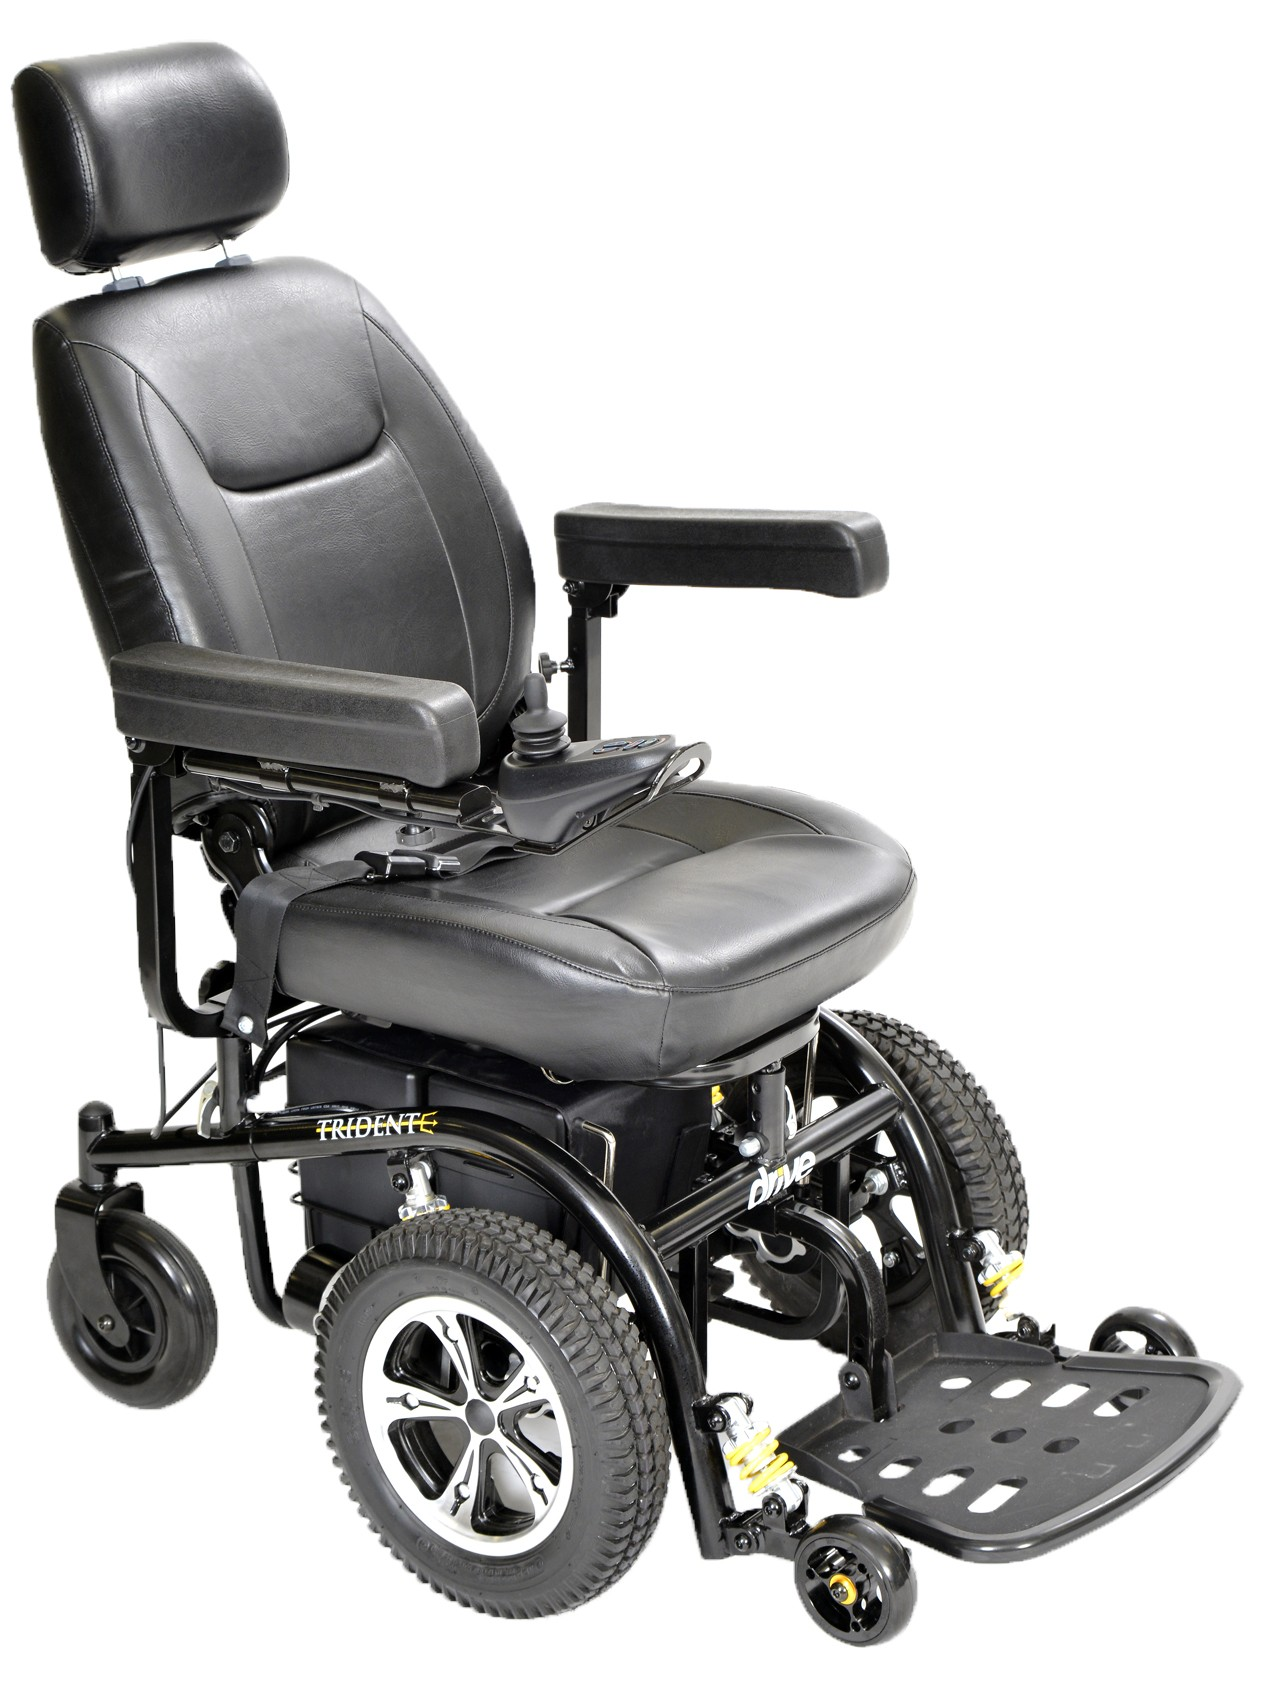 power chair parts menards garden chairs mobility scooter repair company in central florida